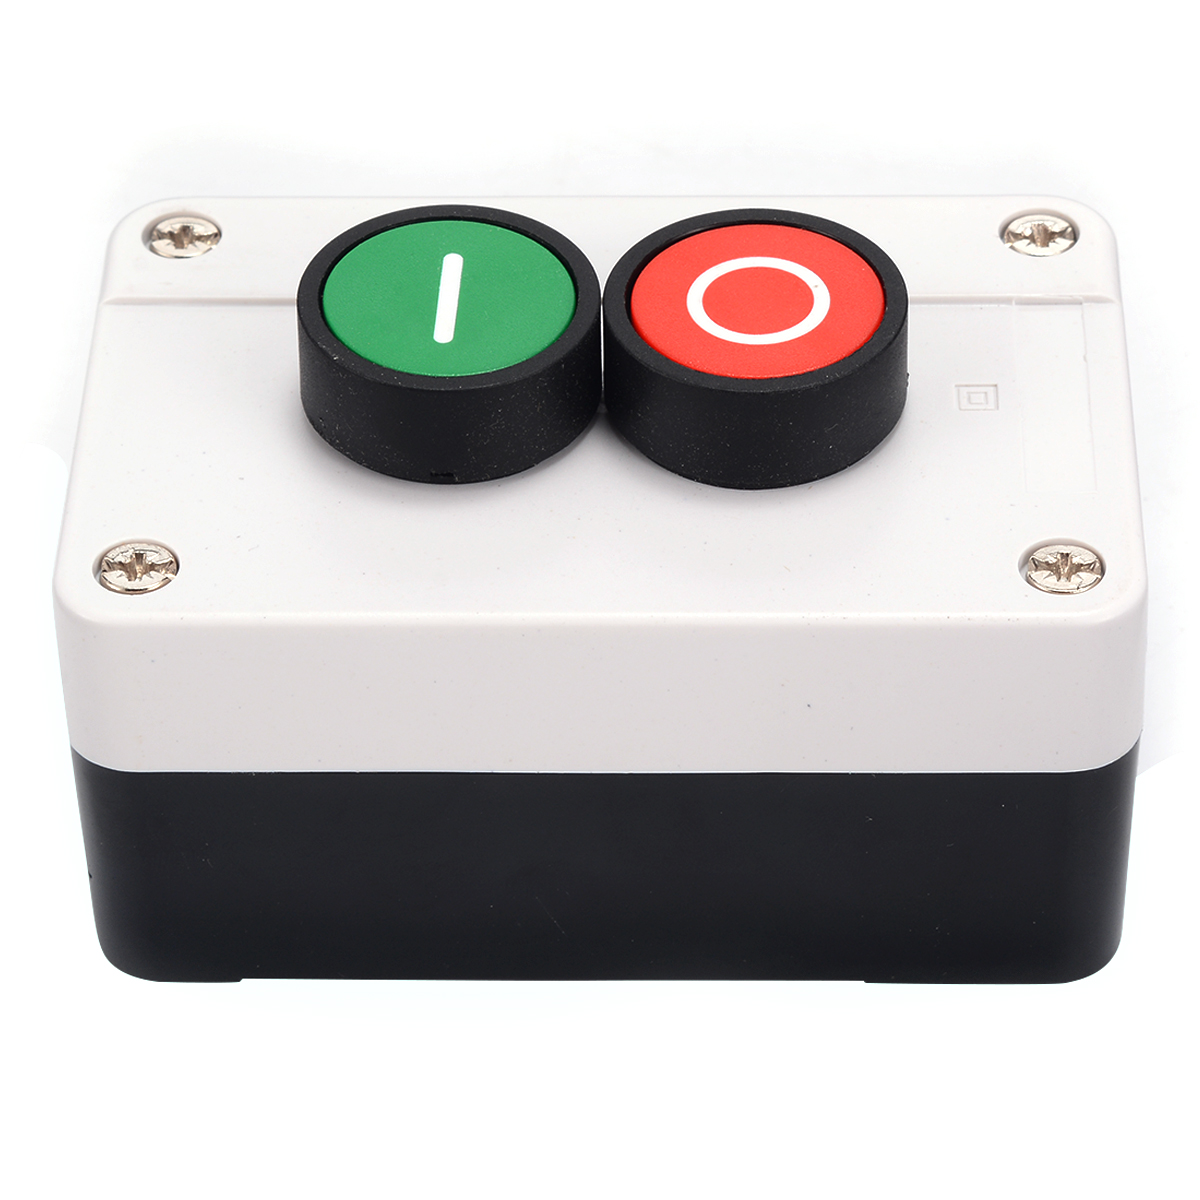 1X Push Button Case Box Control Station Switch Remote Start Stop Motor Solenoid IP55 Button Box Switch Accessories1X Push Button Case Box Control Station Switch Remote Start Stop Motor Solenoid IP55 Button Box Switch Accessories